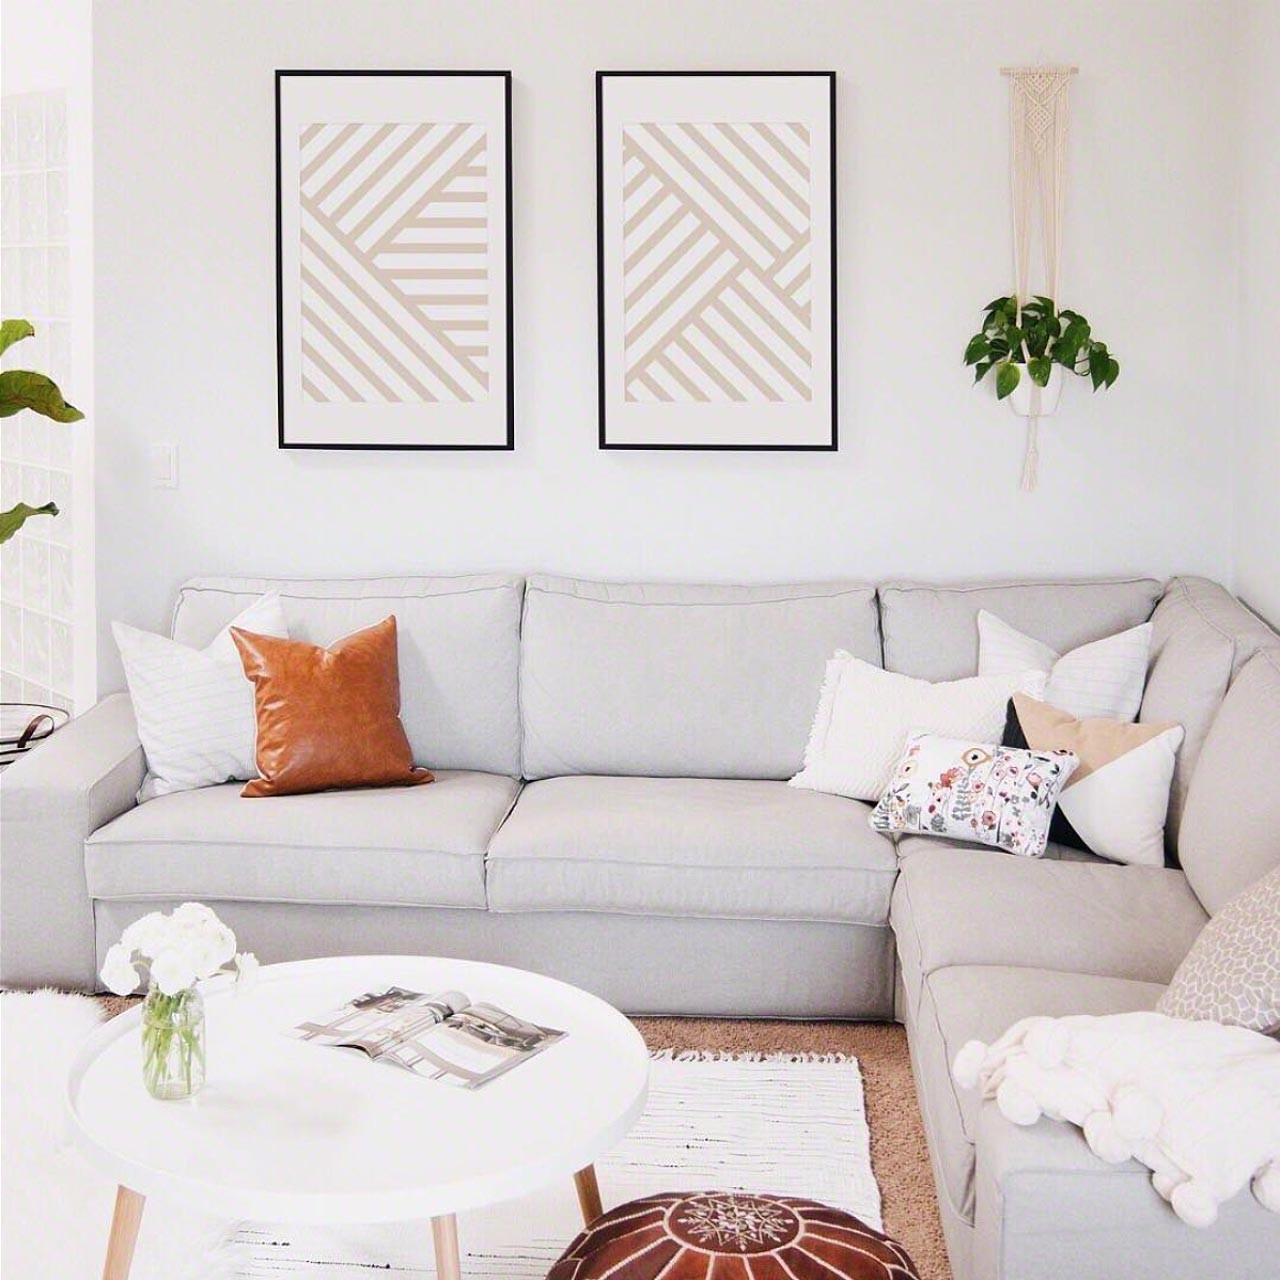 'Lines on Lines I' Modern Geometric Art Poster from The Printed Home